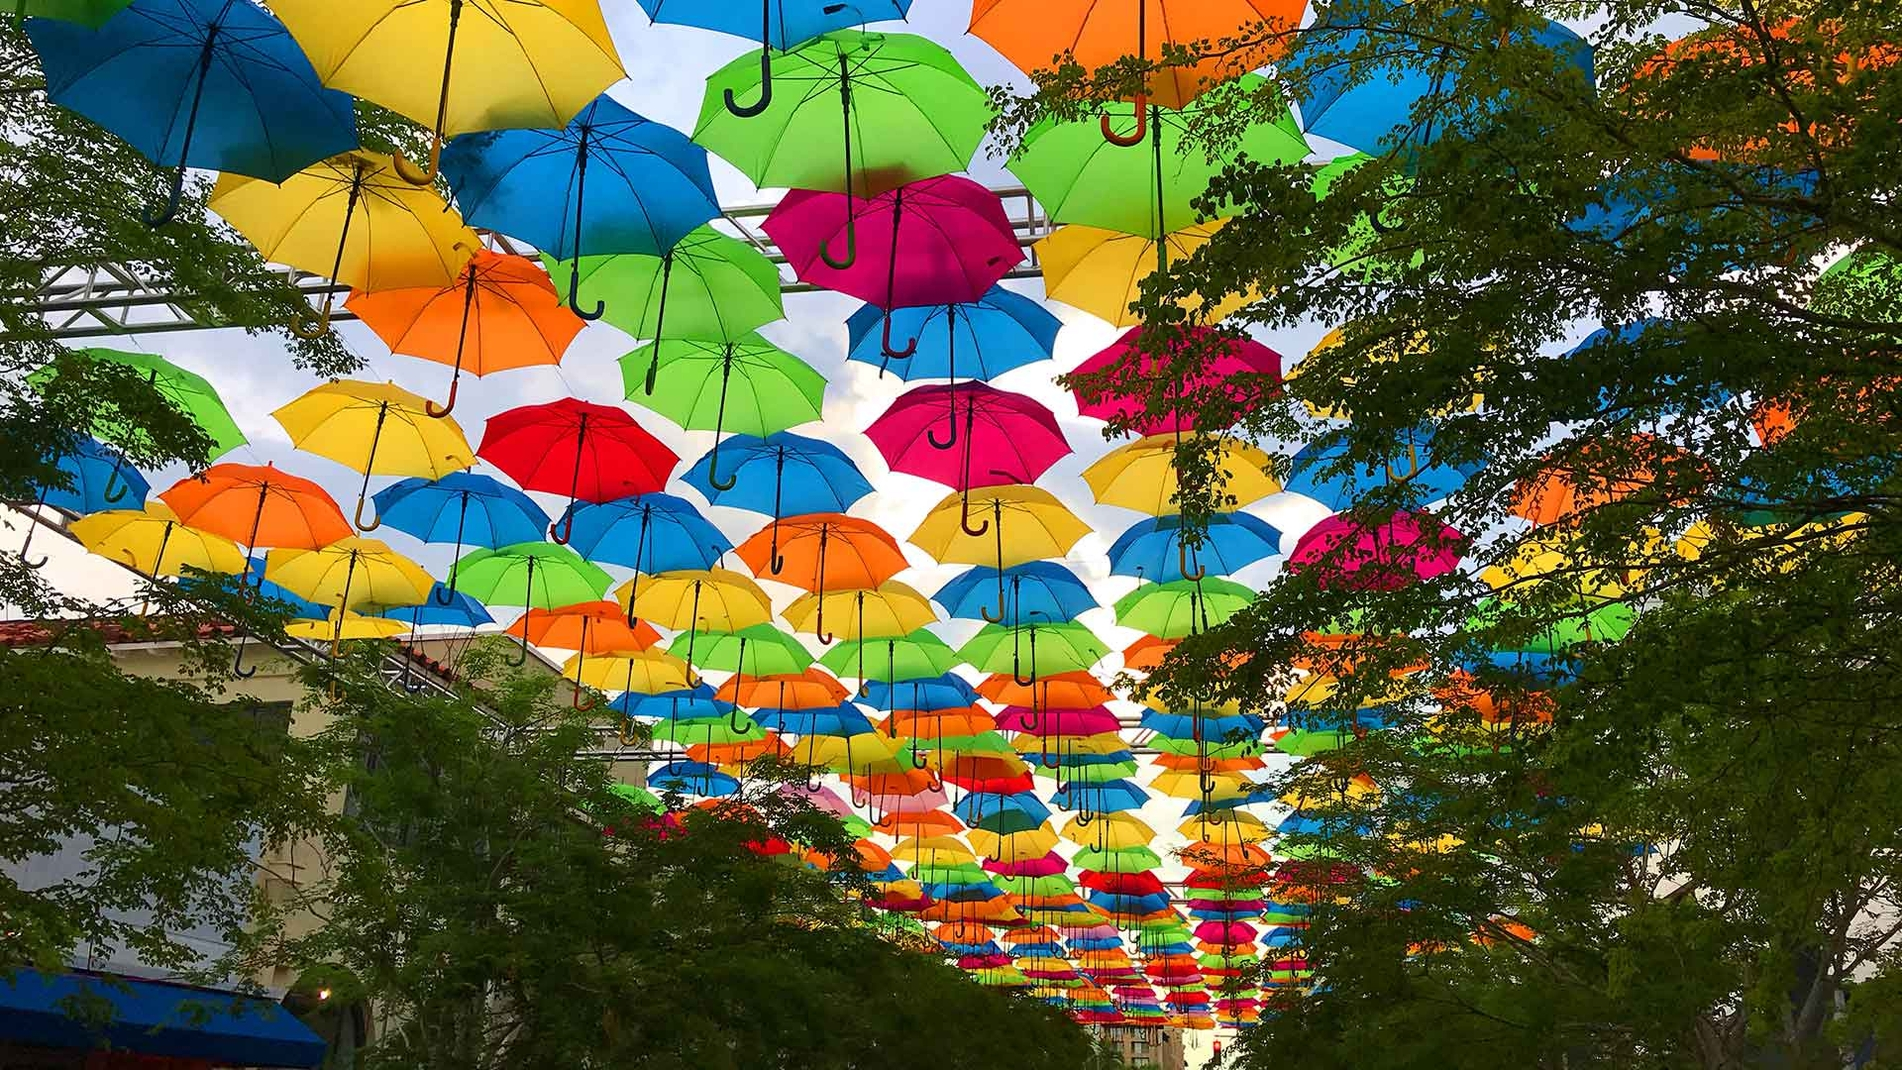 The colorful umbrellas that affect the emotions of those who walk under them